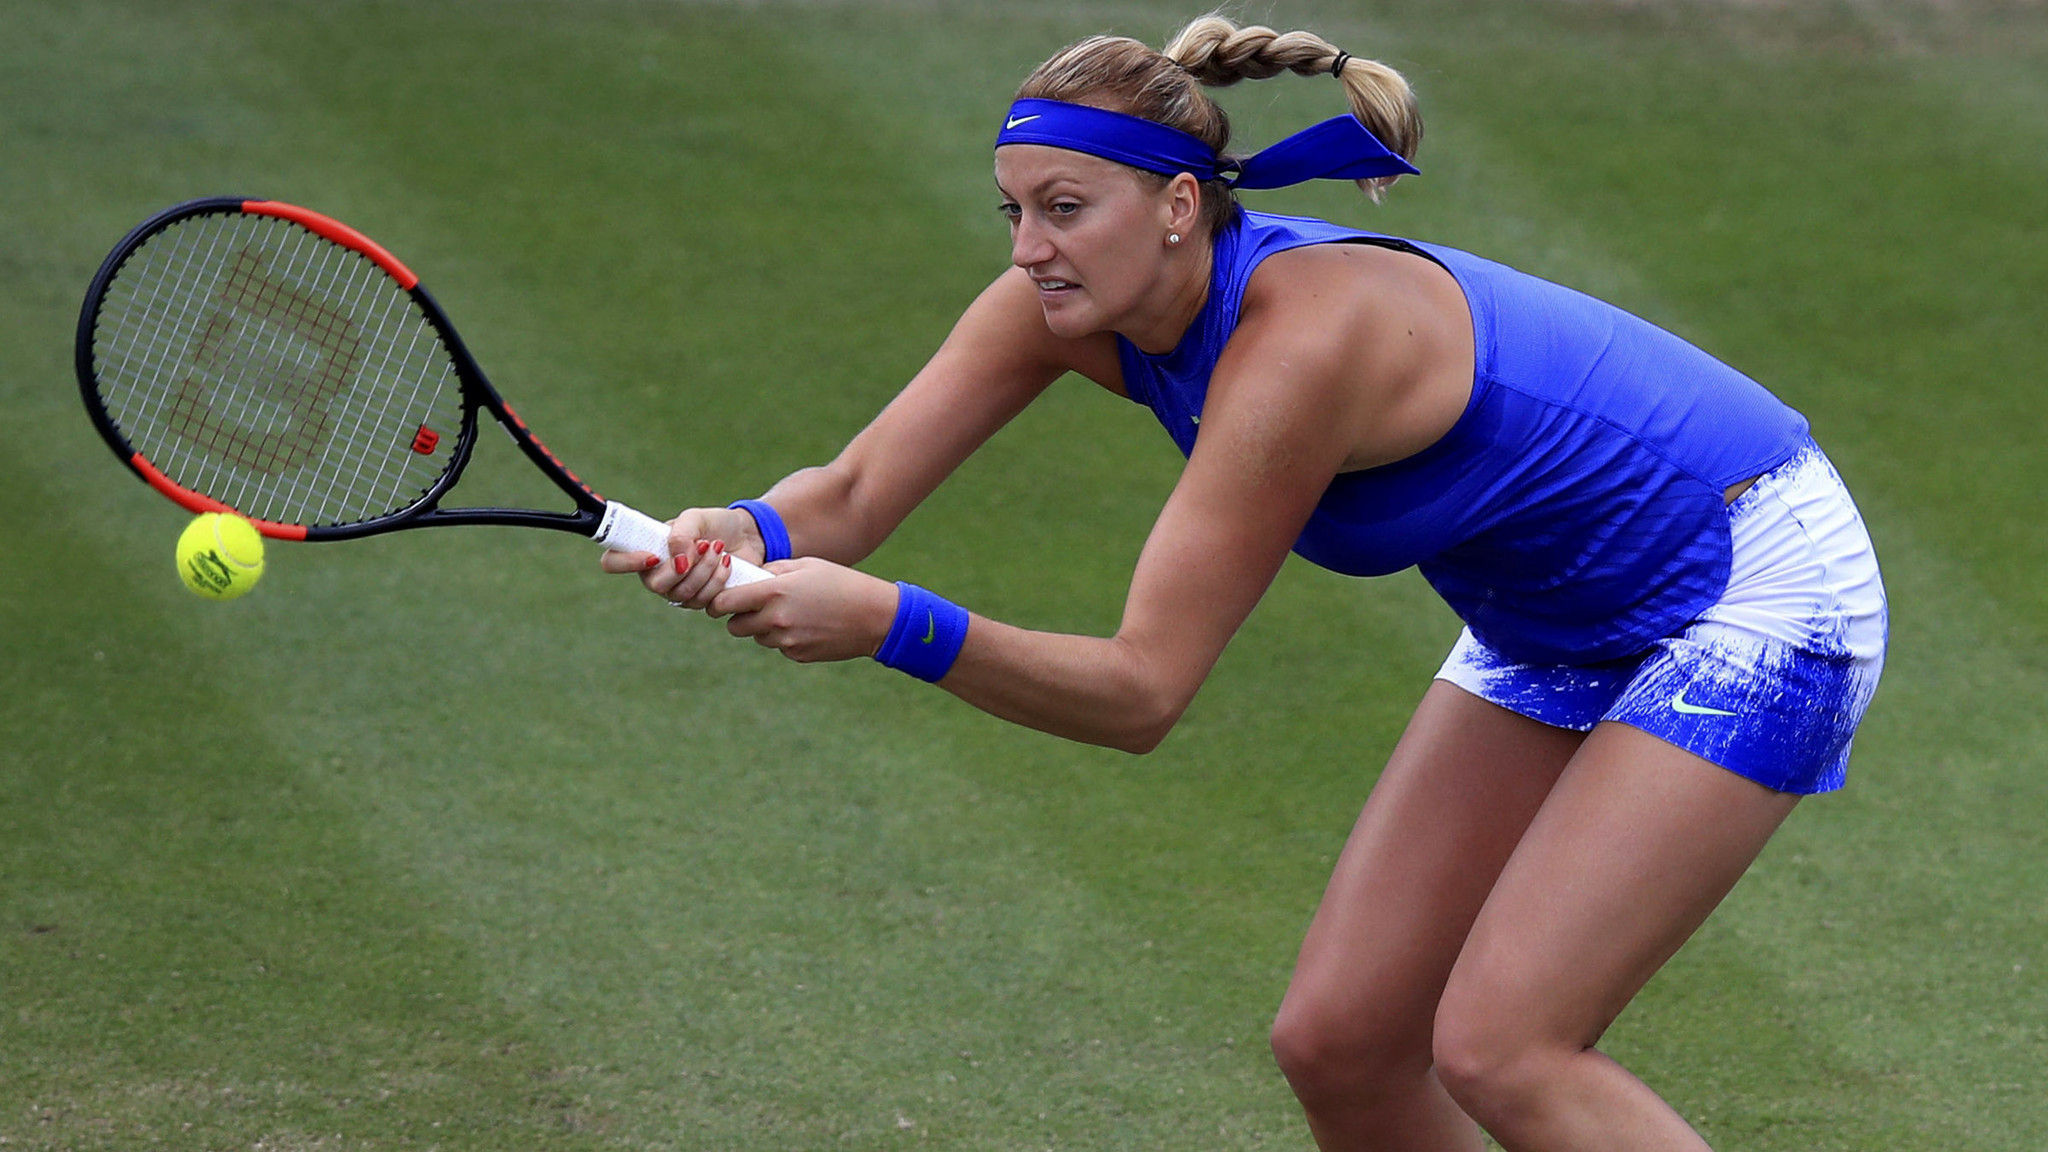 Tennis: Petra Kvitova reaches first final since her hand was injured during knife attack